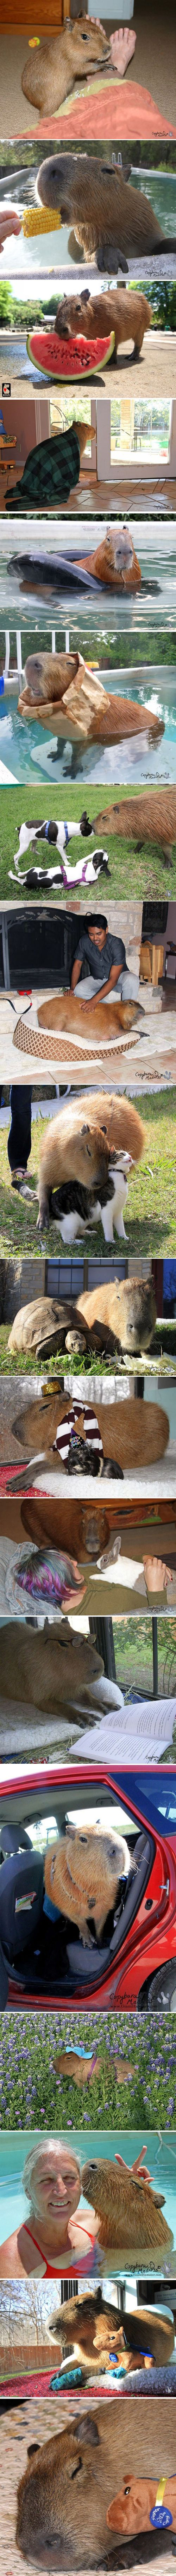 Best animals images on pinterest funny animals funny